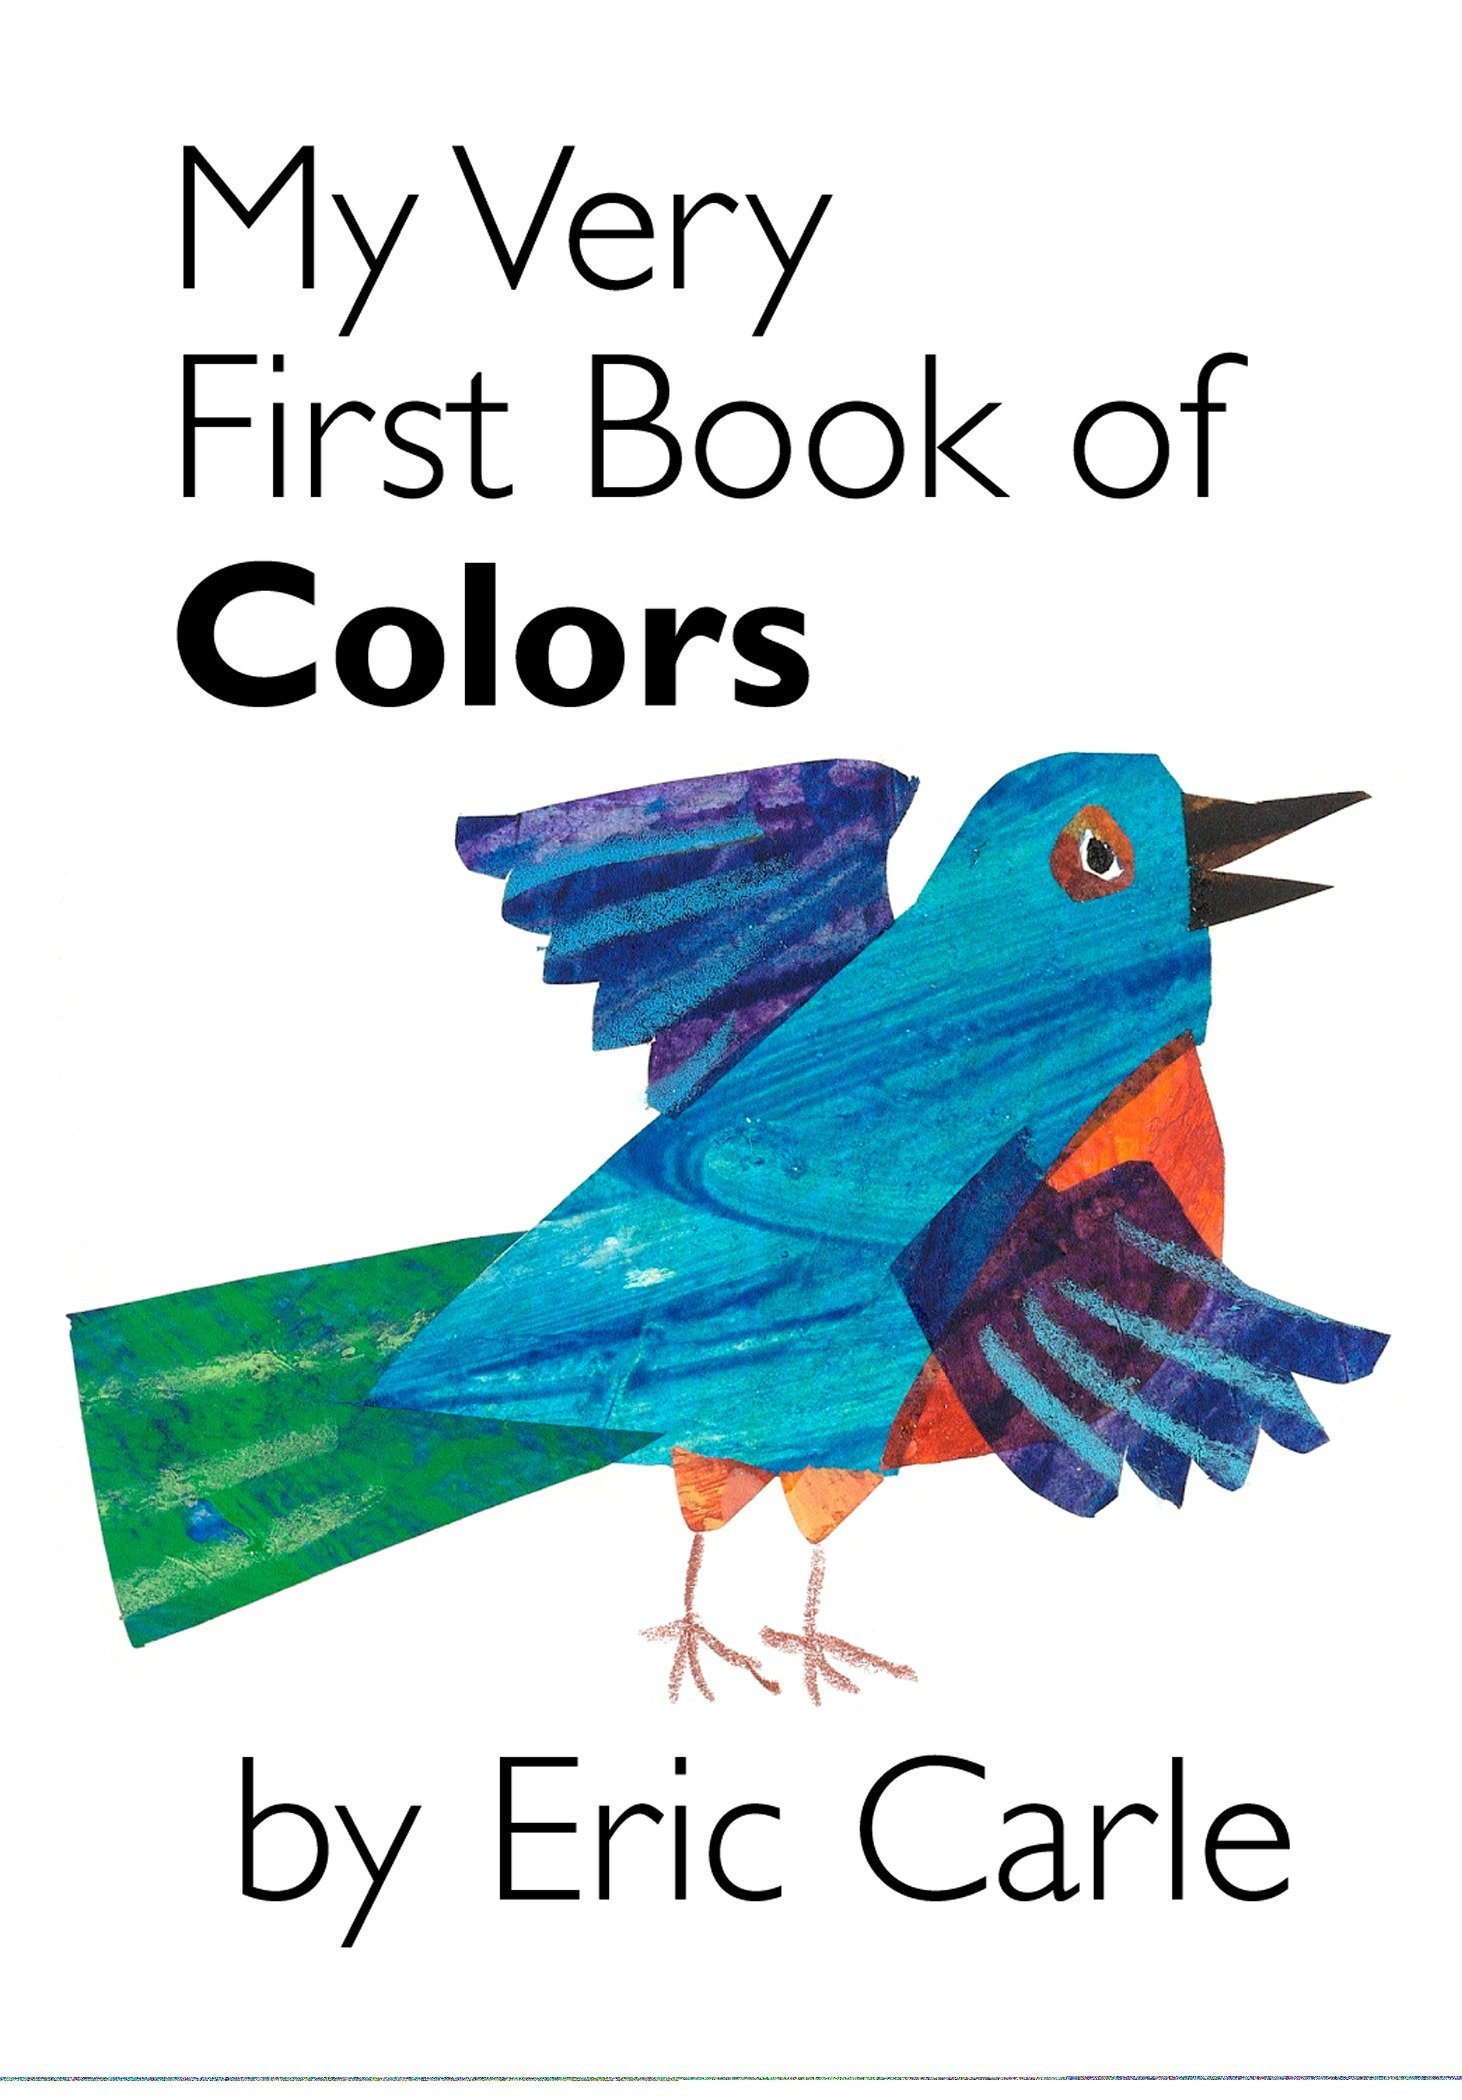 Amazon.com: My Very First Book of Colors (9780399243868): Eric Carle ...